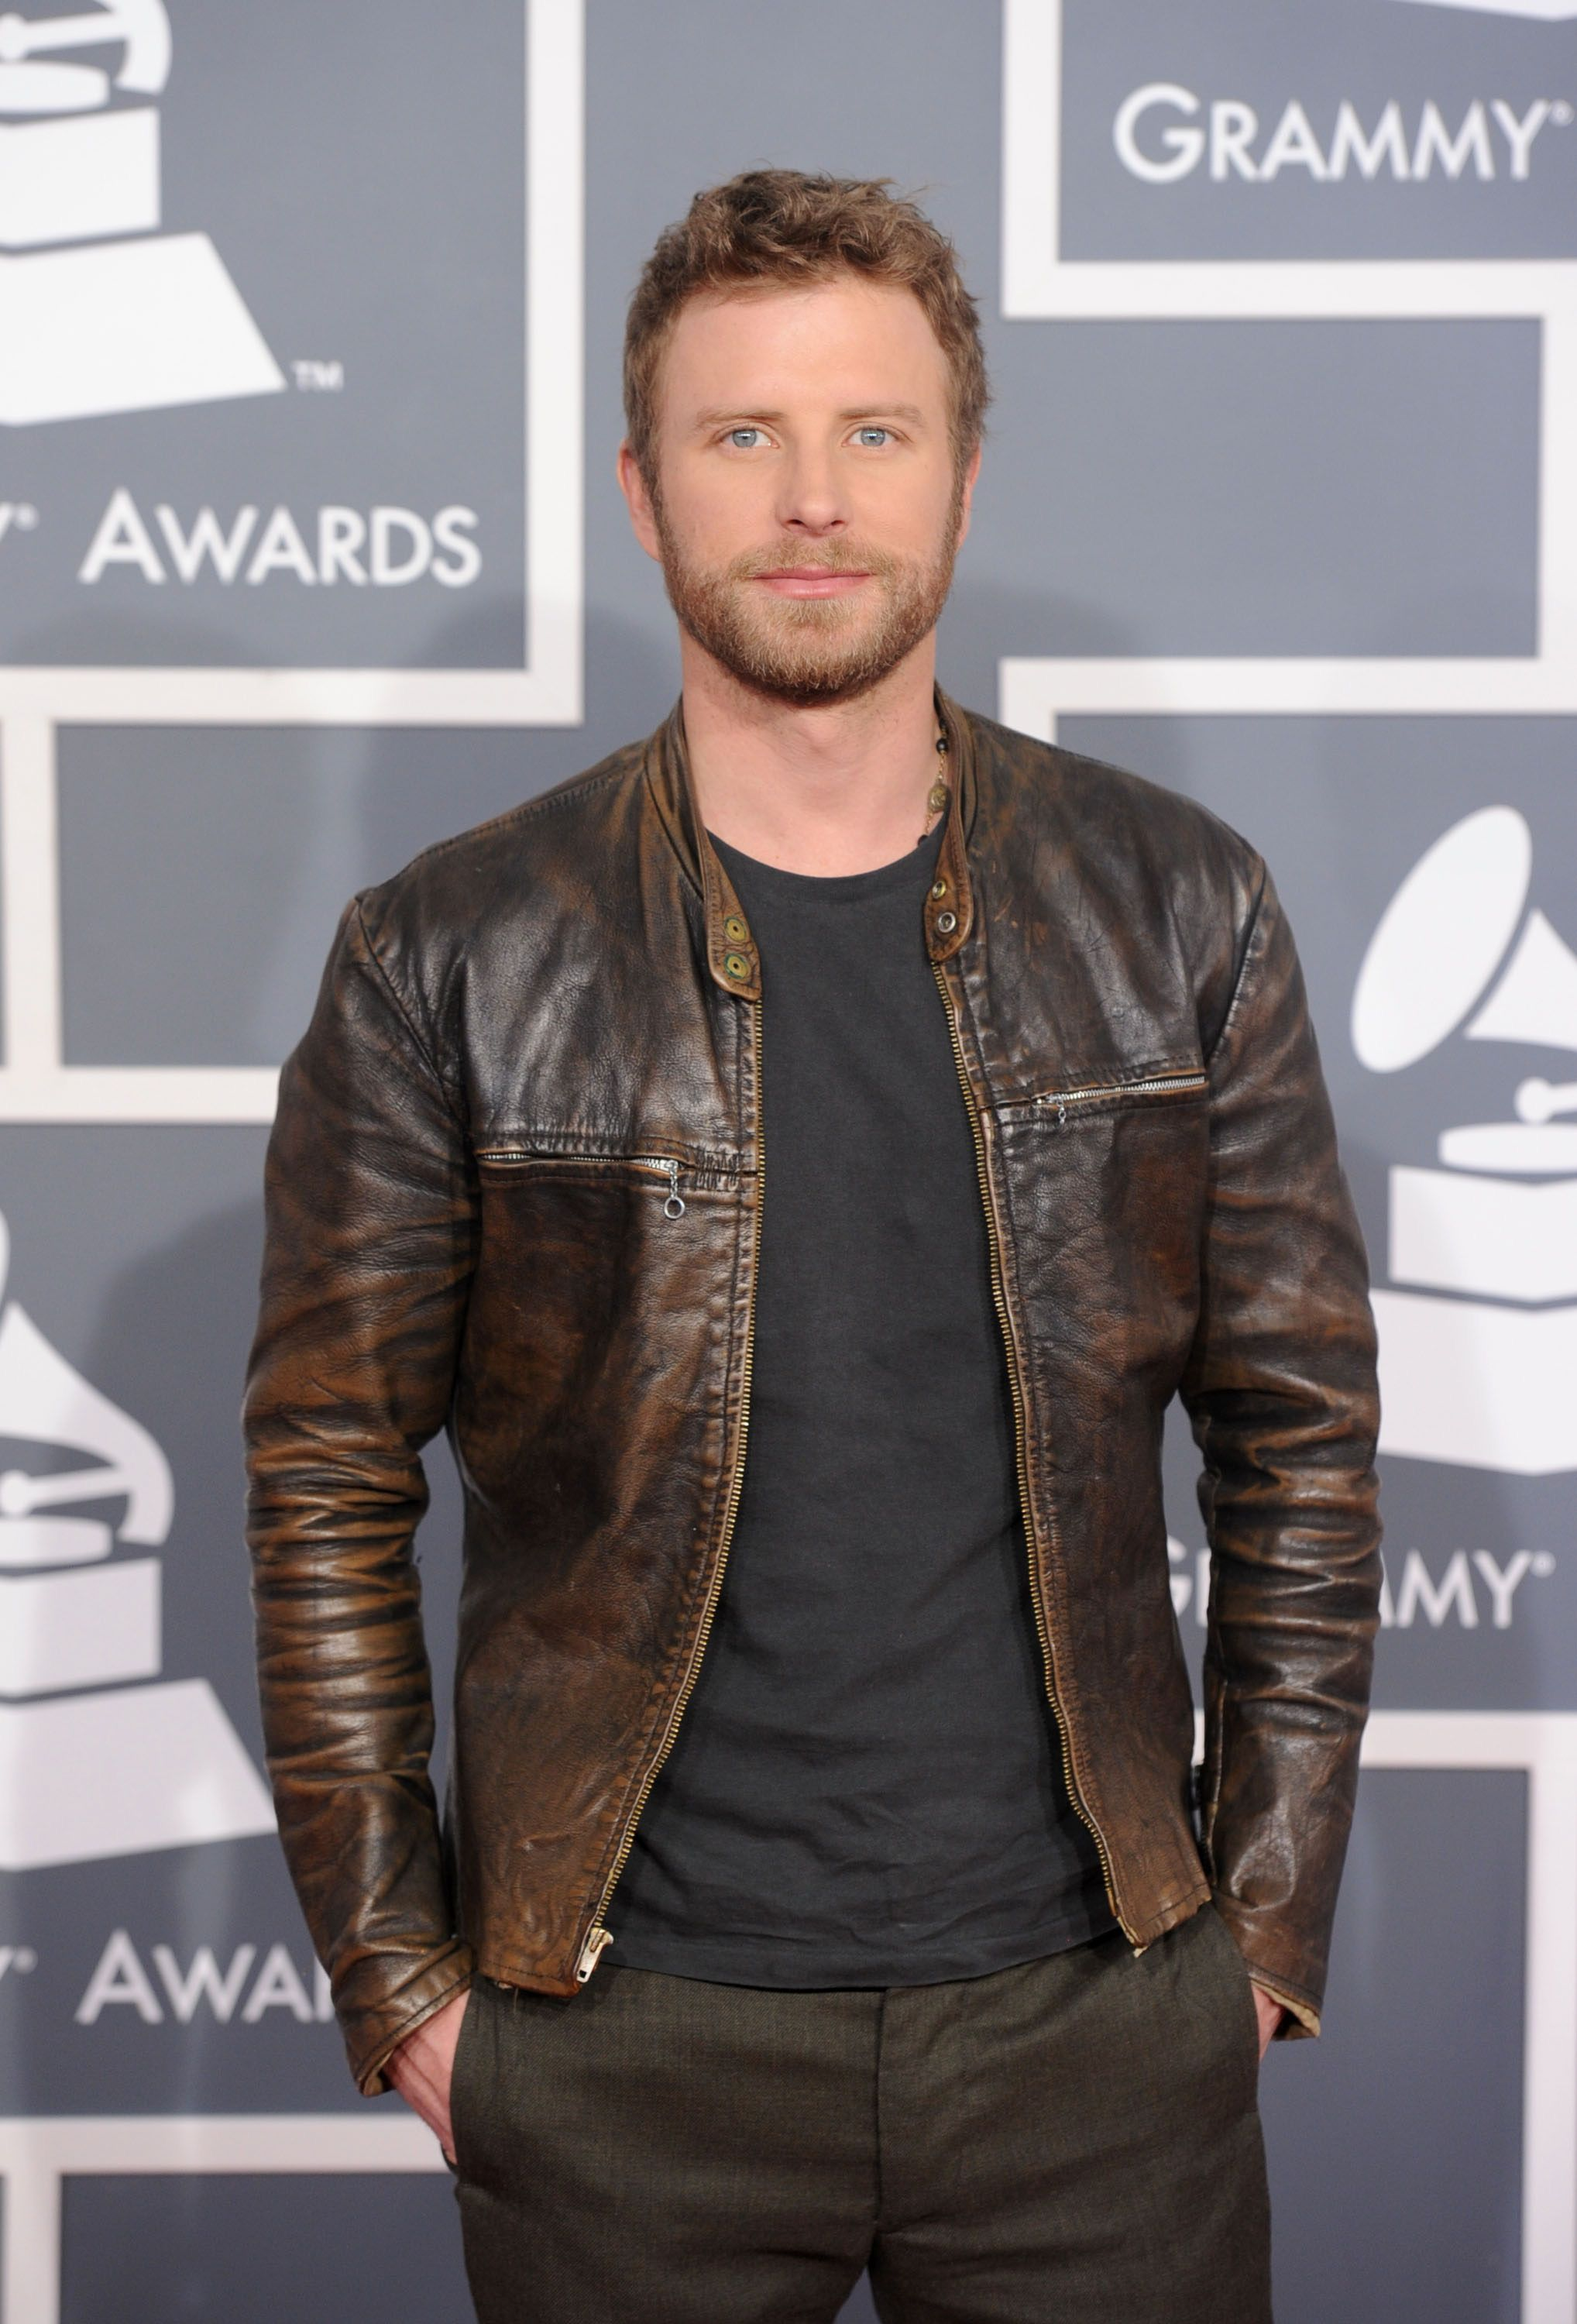 bruno mars dierks bentley leather jackets and leather ultimo jackets provide to its customers the best leathers jacket in affordable price discover the latest design trends in men women celebrities